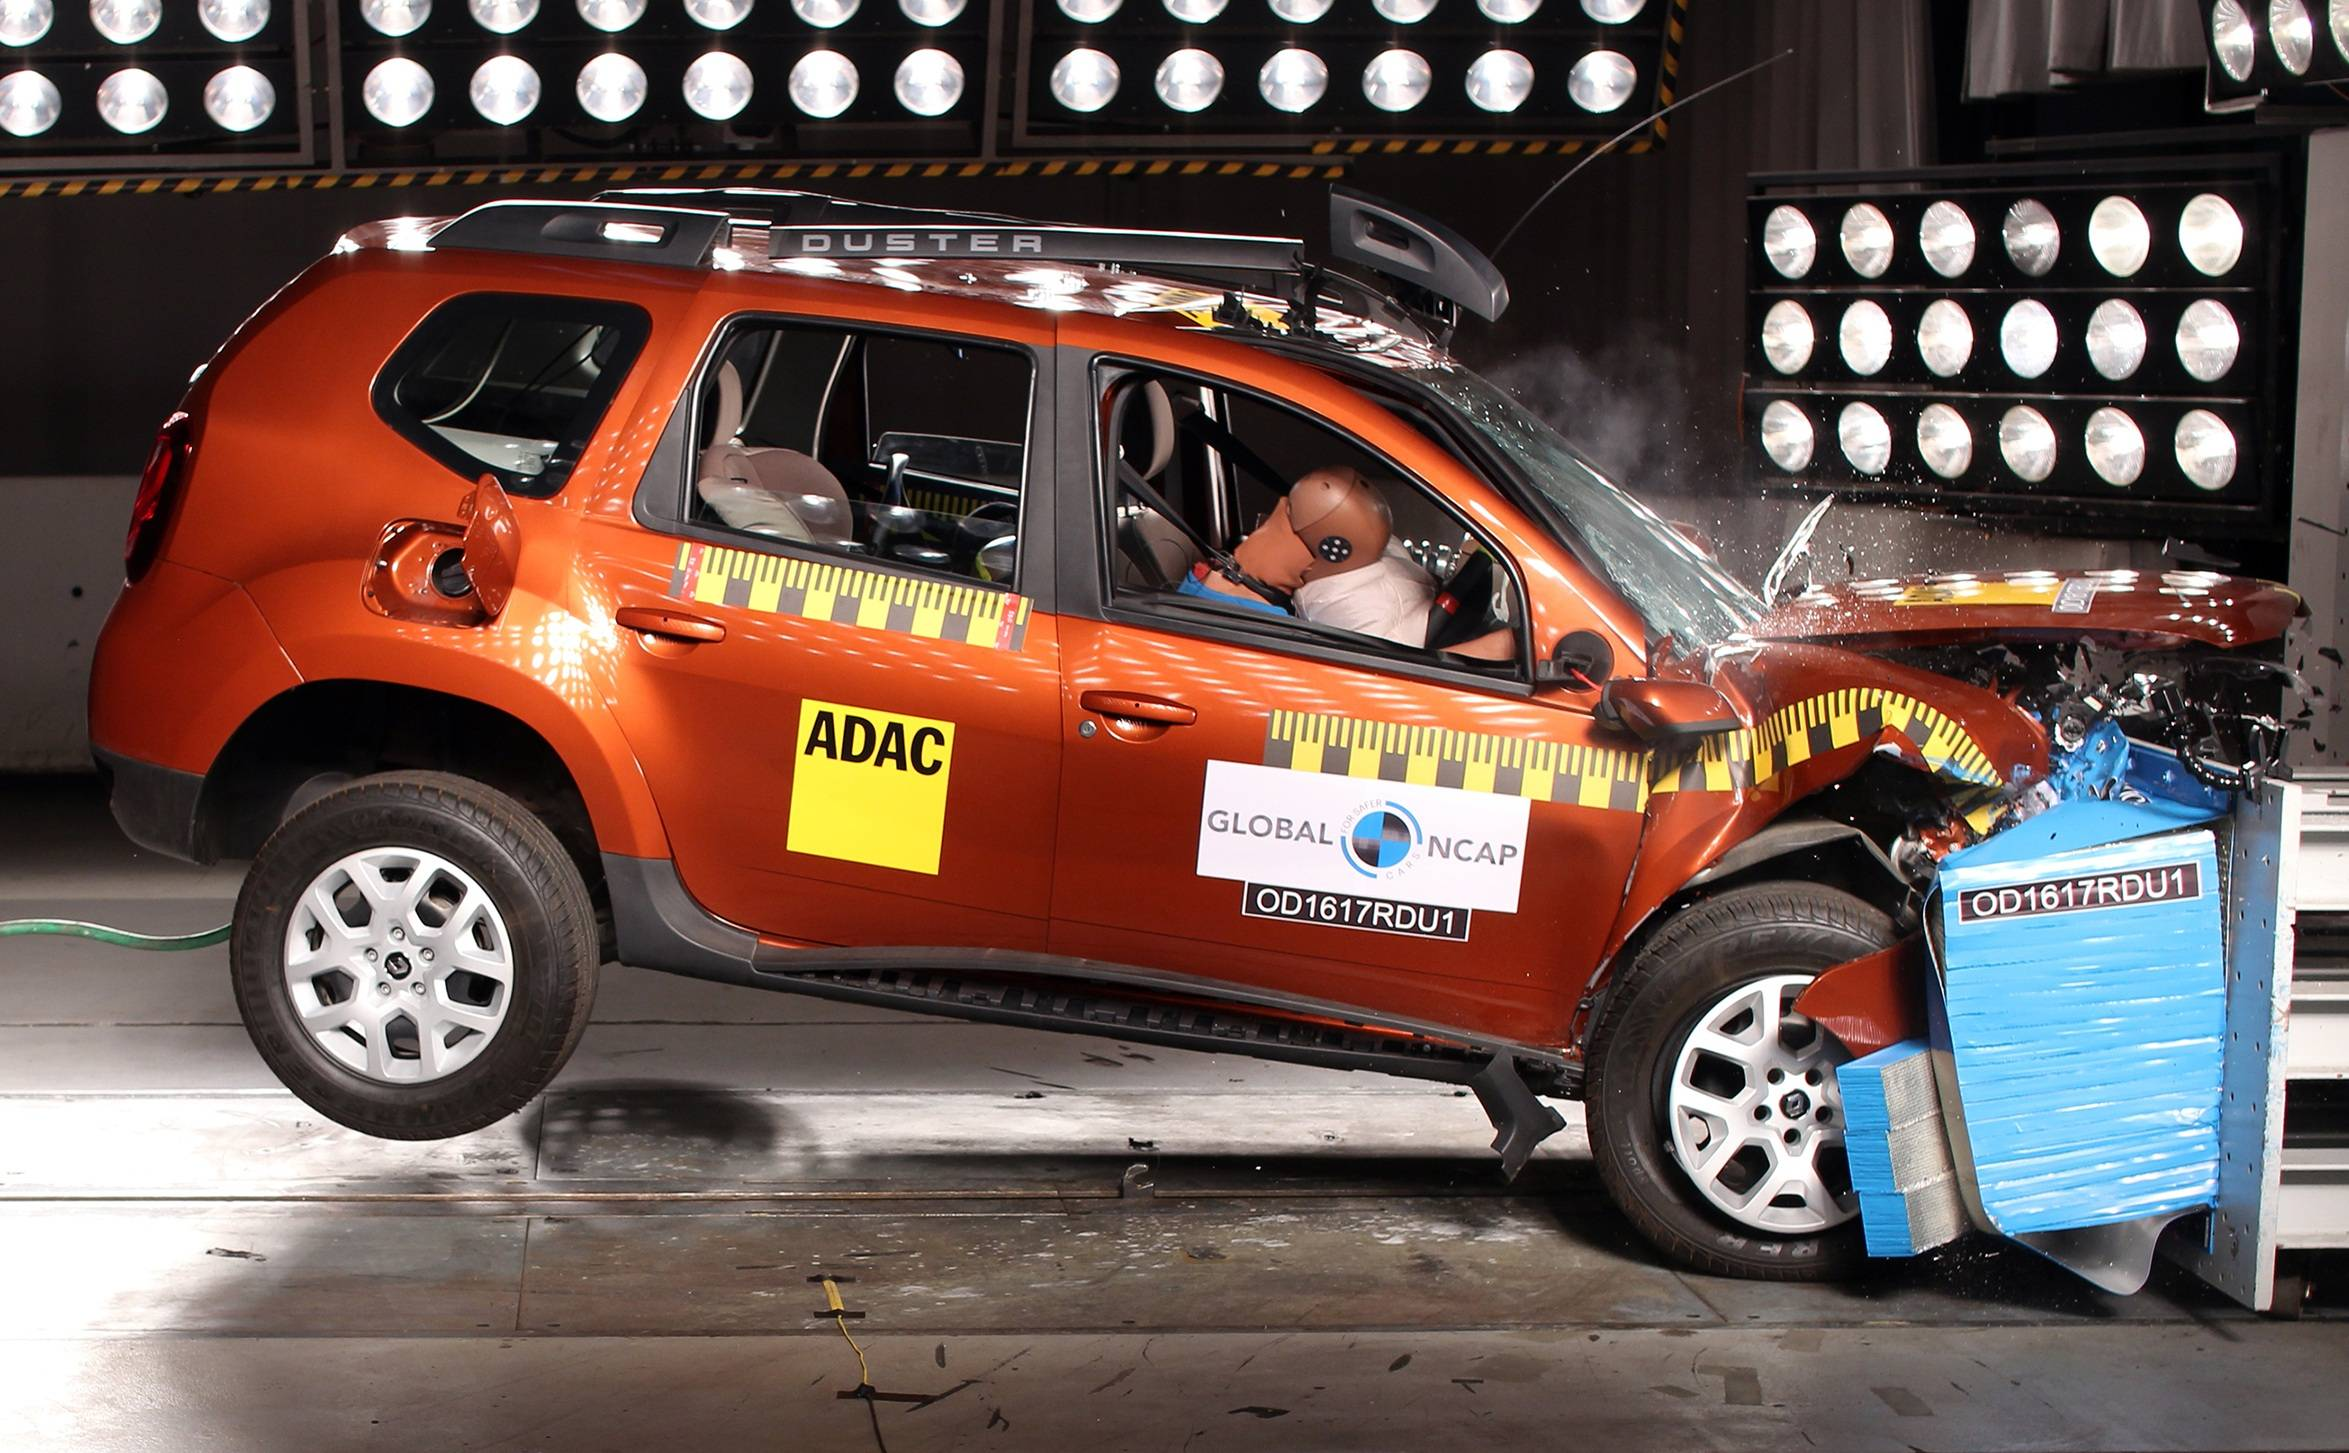 This week in auto Duster fails crash test Royal Enfield shows